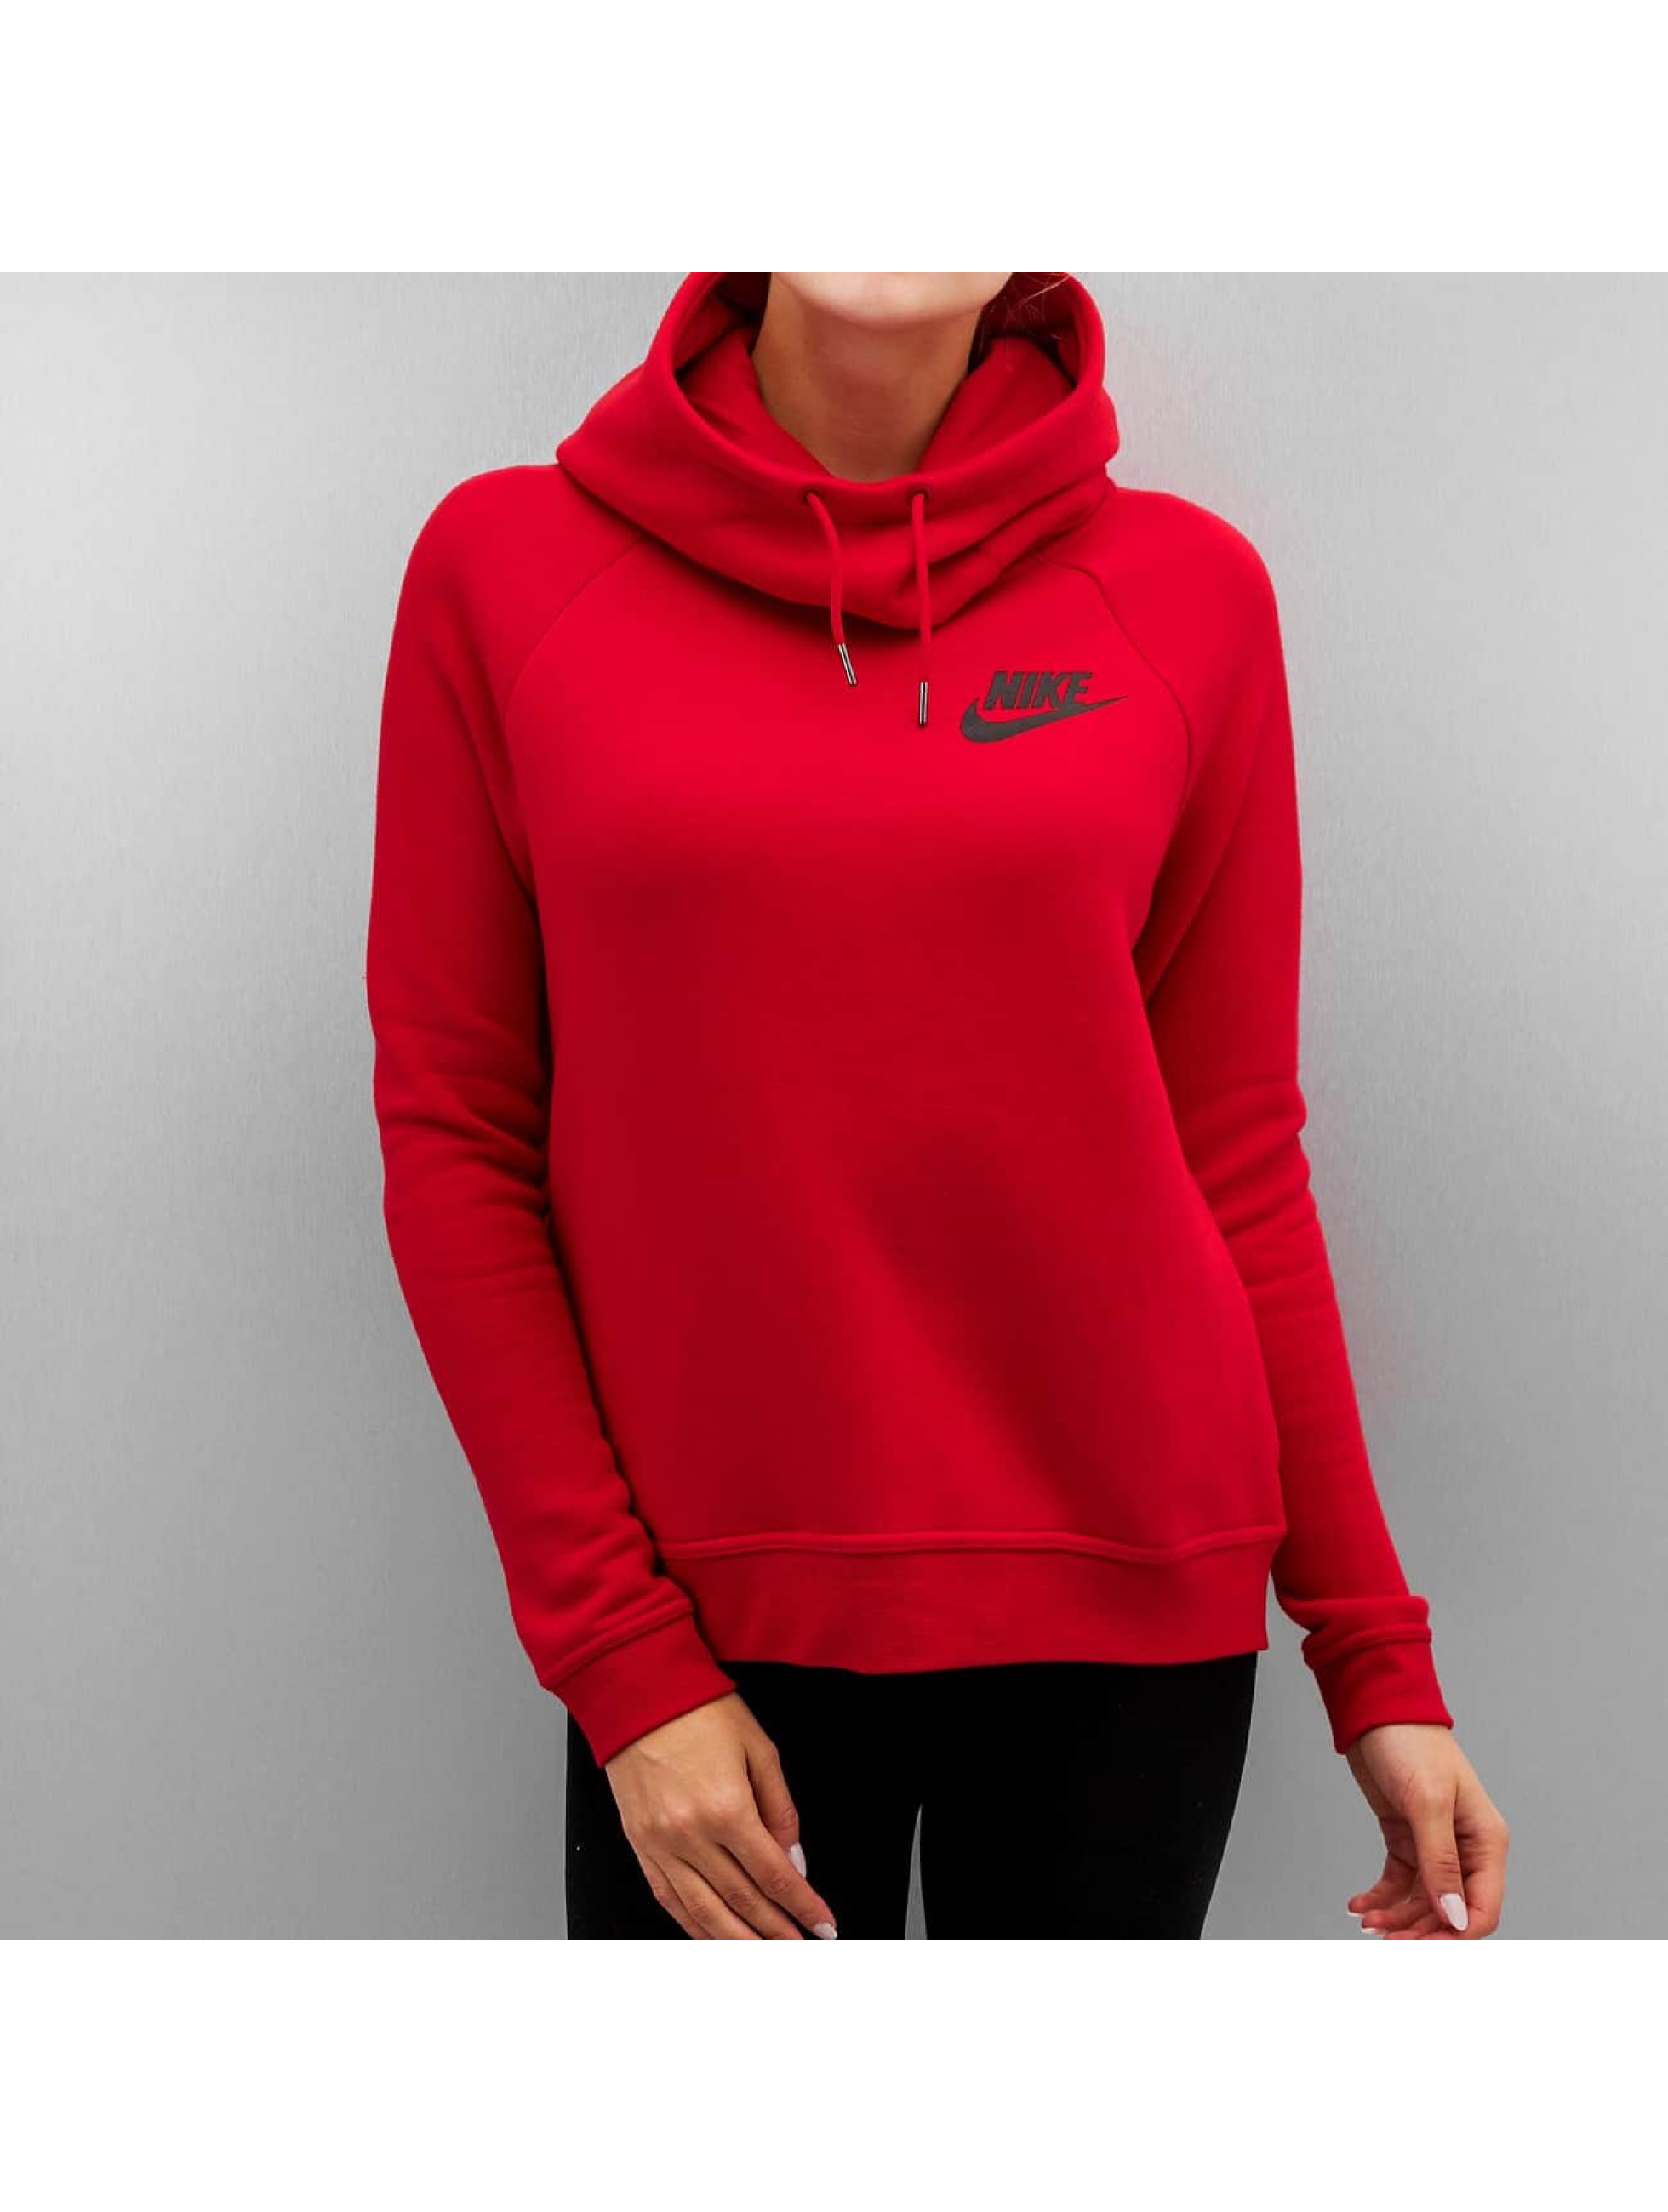 "nike sweat shops essay Nike shops sweat  there are positive and negative impacts of sweat shops and the essay concentrates on the  ""are sweatshops good or bad essay example."